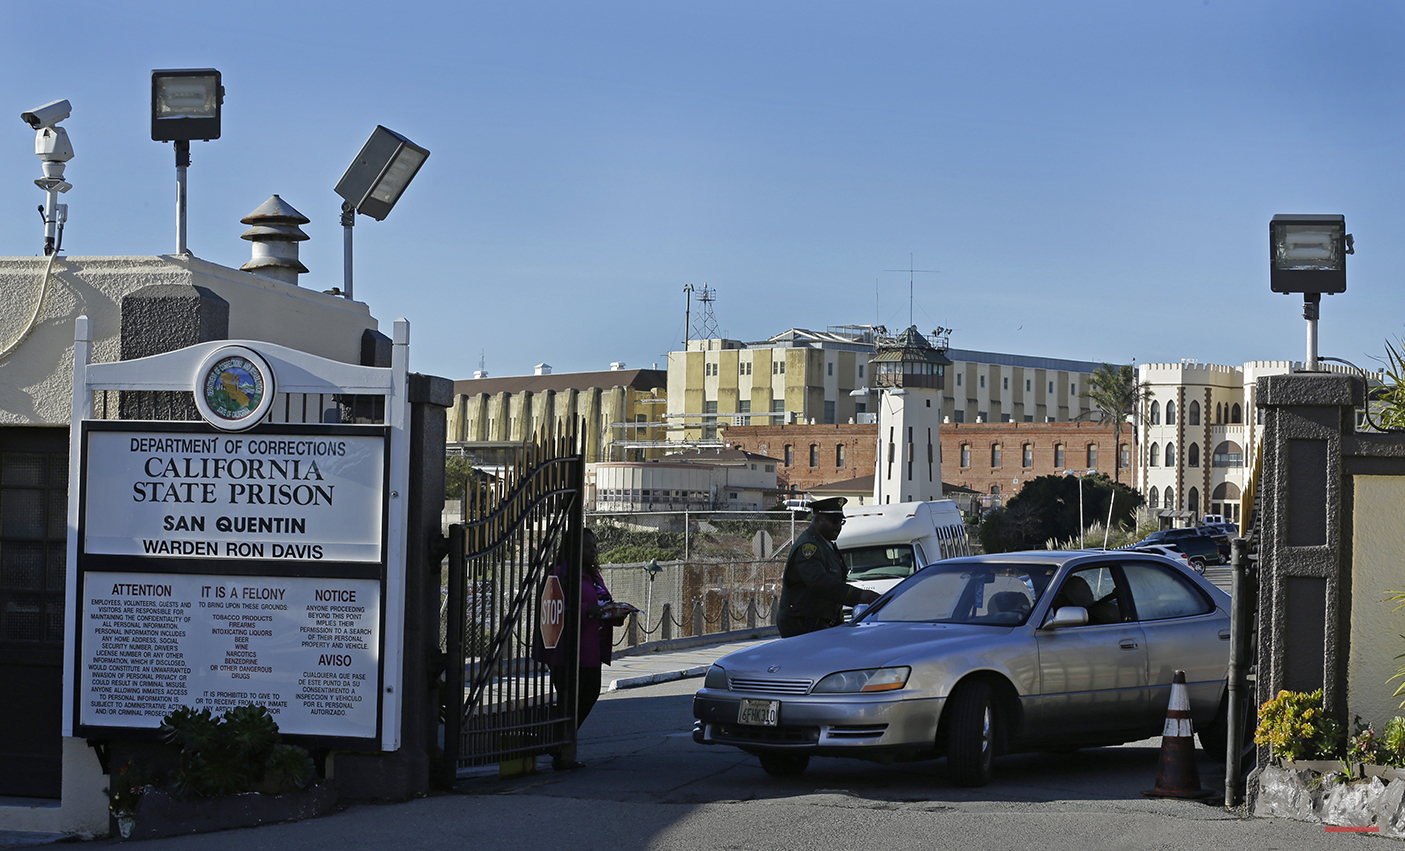 In this photo taken on Tuesday, Dec. 29, 2015, a guard checks identification of a person leaving the east gate of San Quentin State Prison in a vehicle in San Quentin, Calif. With California's lethal injection protocol in limbo, the nearly 750 inmates at San Quentin State Prison, the nation's most populous death row, are more likely to die from natural causes or suicide than execution. The inmates await a final decision on a proposed one-drug execution method and the possibility that voters in 2016 will scrap the death penalty altogether. (AP Photo/Ben Margot)